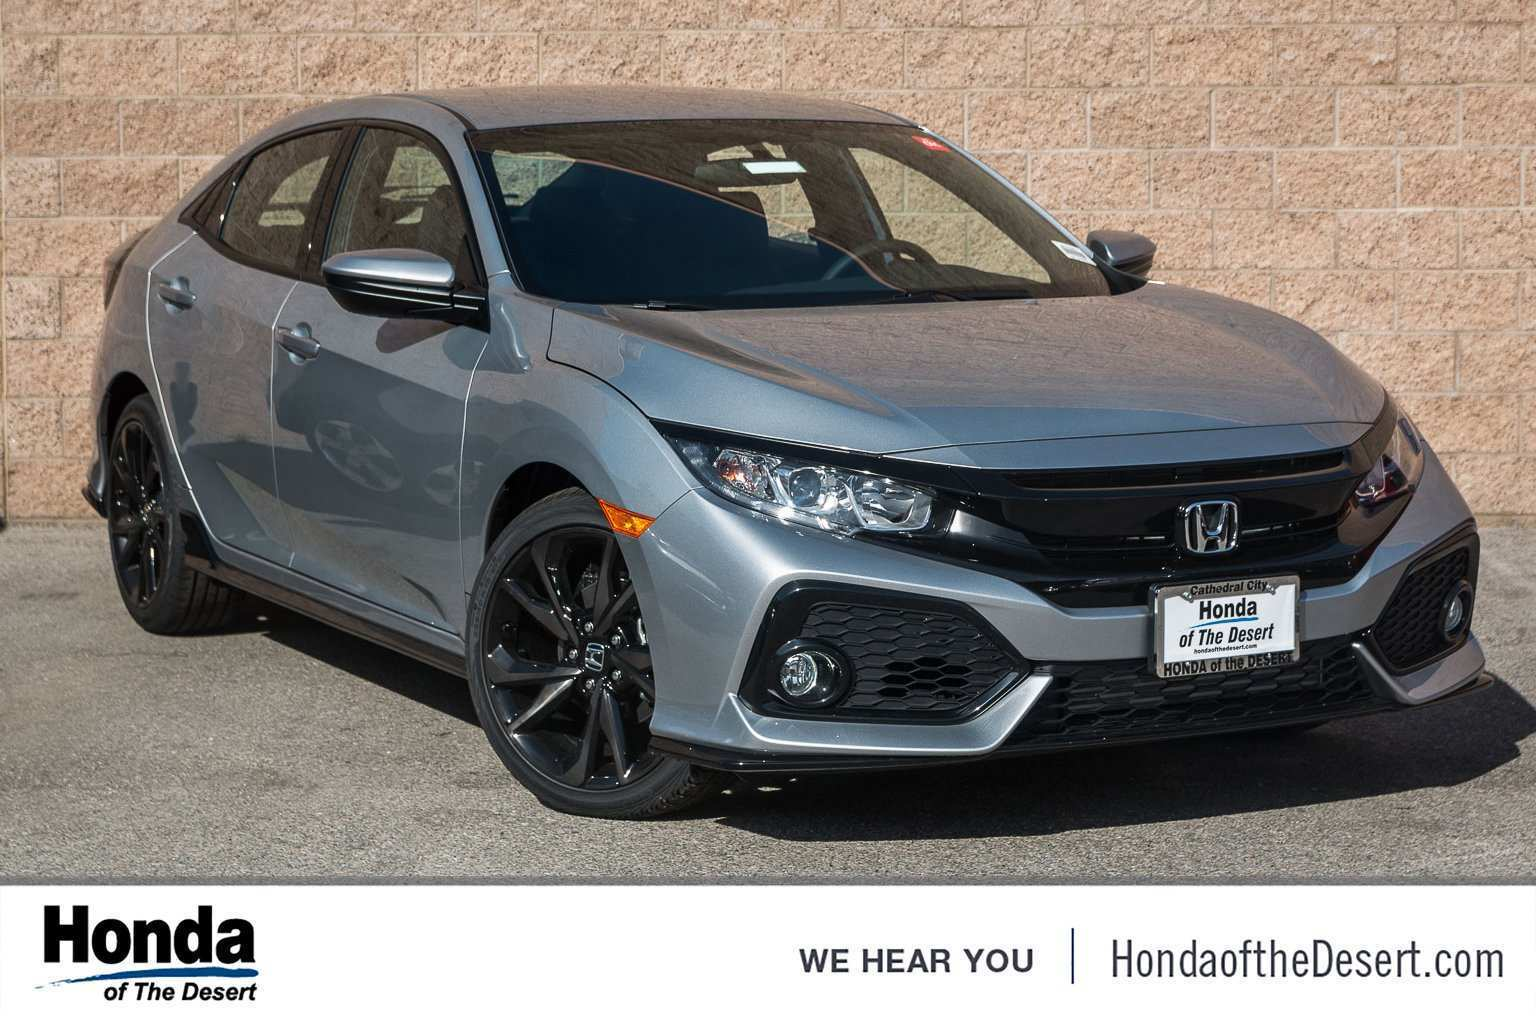 26 All New 2019 Honda Civic Redesign And Review